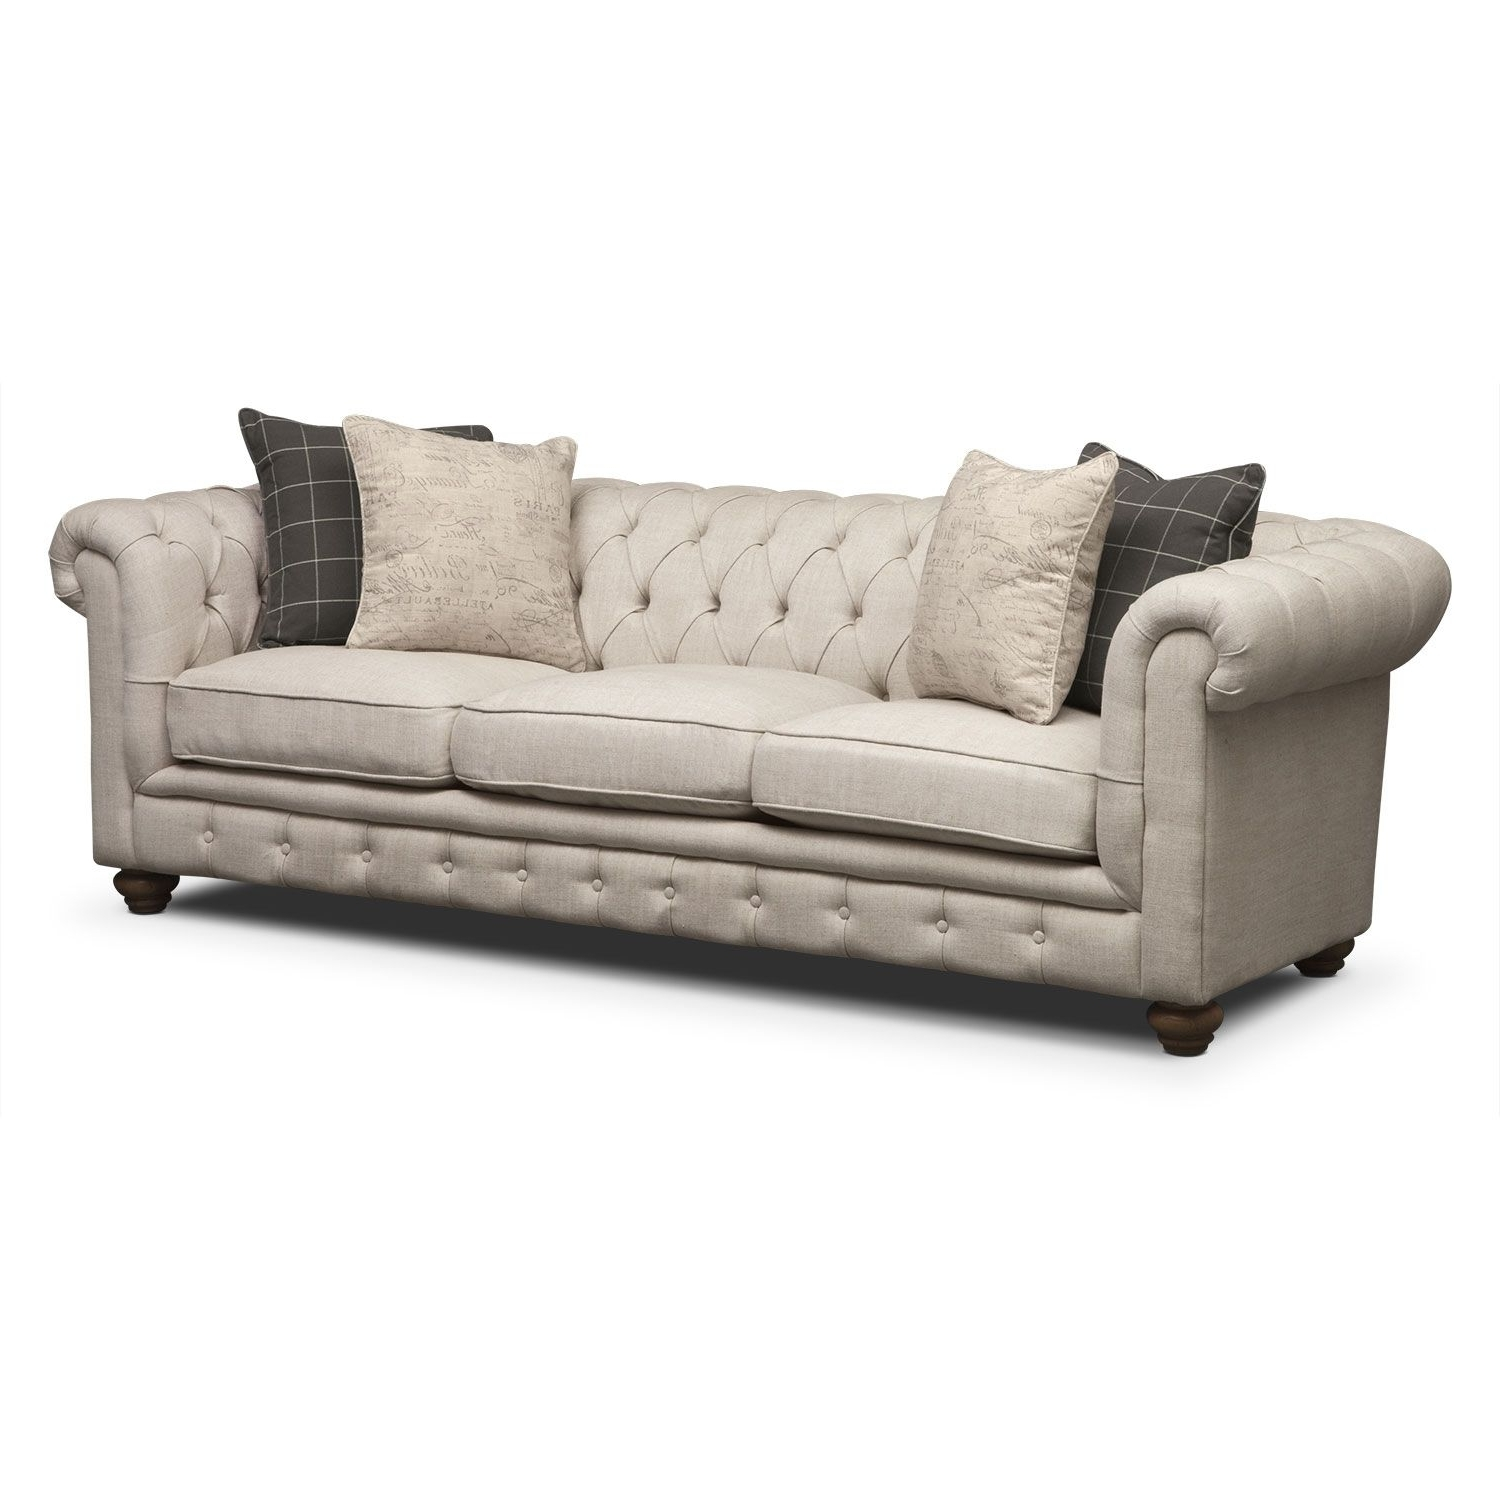 Living Room Furniture U2013 Madeline Sofa; $799. Living Room. Not A In Current  · Previous Photo Value City Sofas